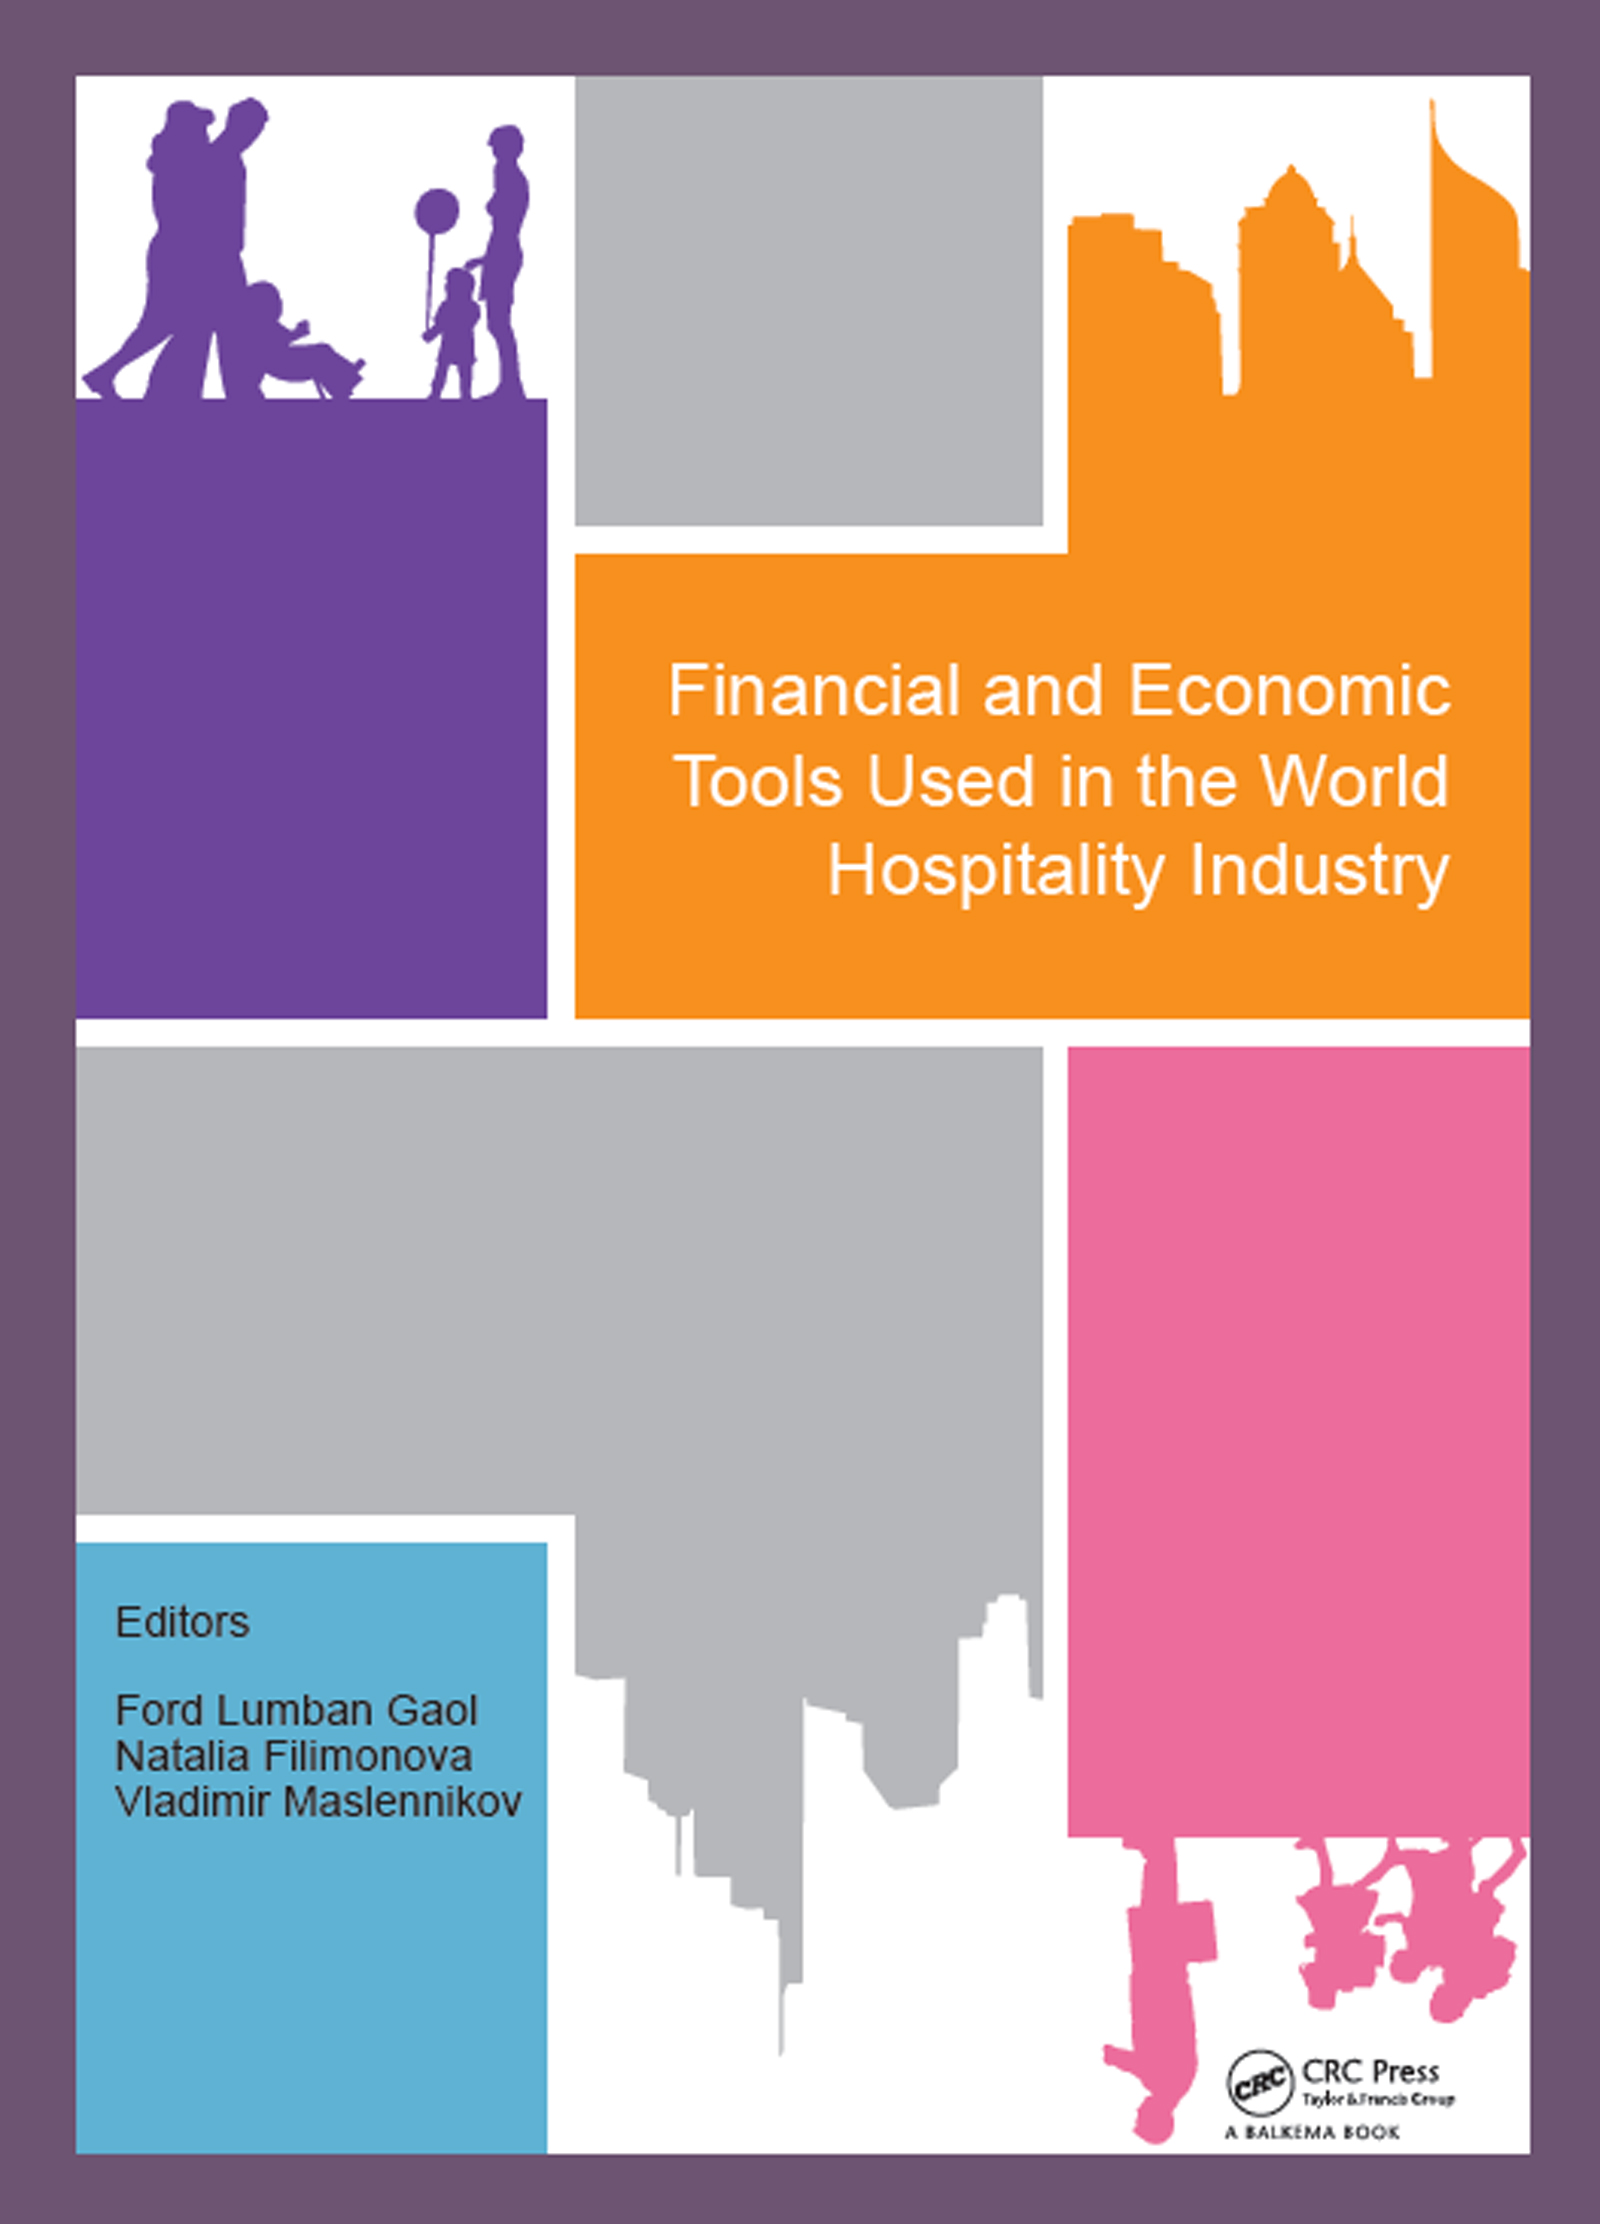 Financial and Economic Tools Used in the World Hospitality Industry: Proceedings of the 5th International Conference on Management and Technology in Knowledge, Service, Tourism & Hospitality 2017 (SERVE 2017), 21-22 October 2017 & 30 November 2017, Bali, Indonesia & Moscow, Russia book cover